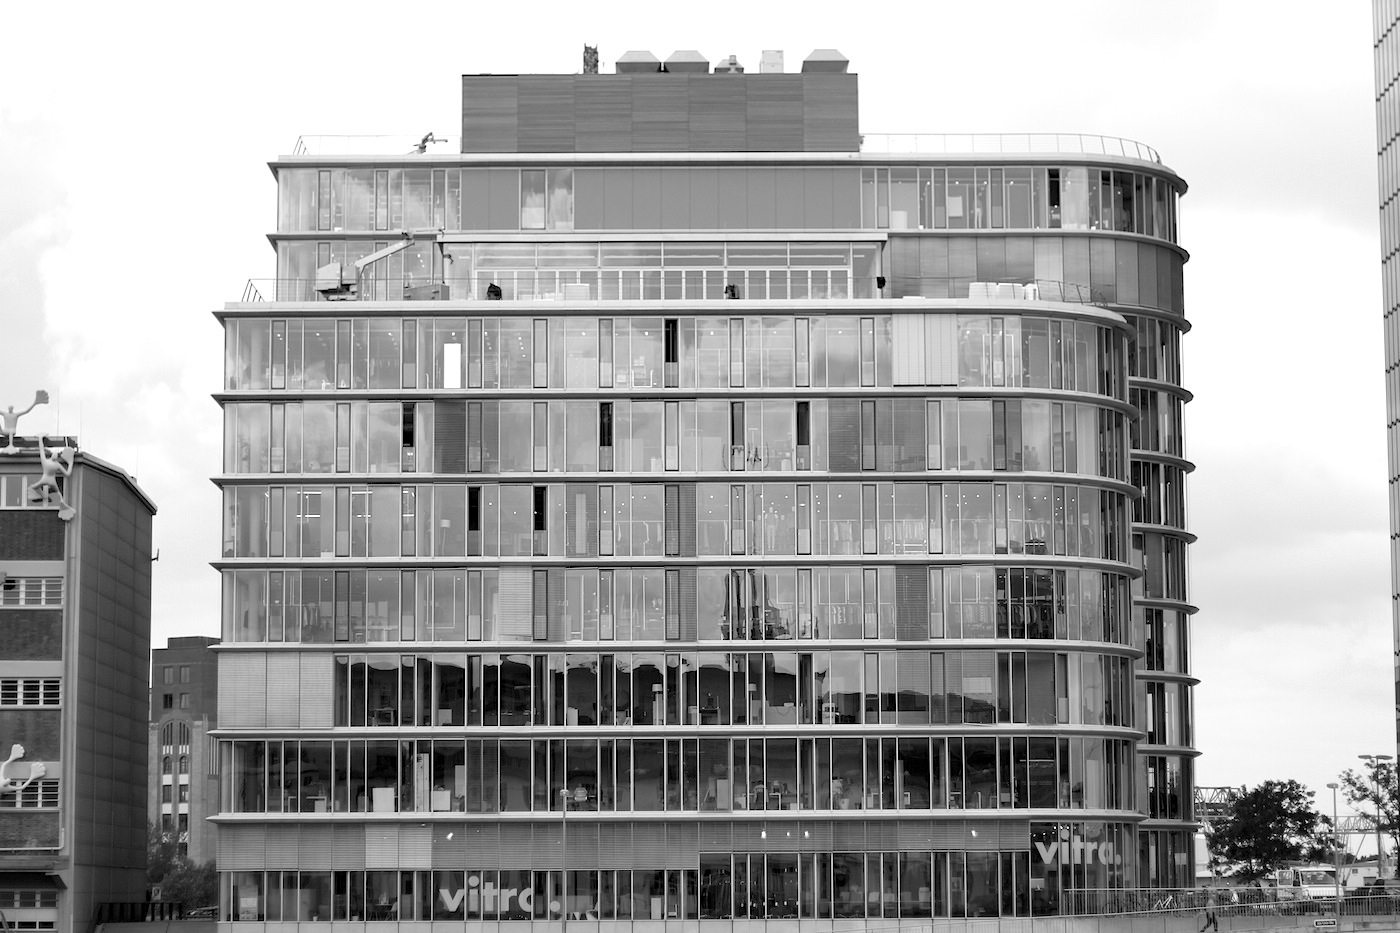 Speditionstraße 17.  By Ingenhoven Overdiek Architekten. Completion: 2002